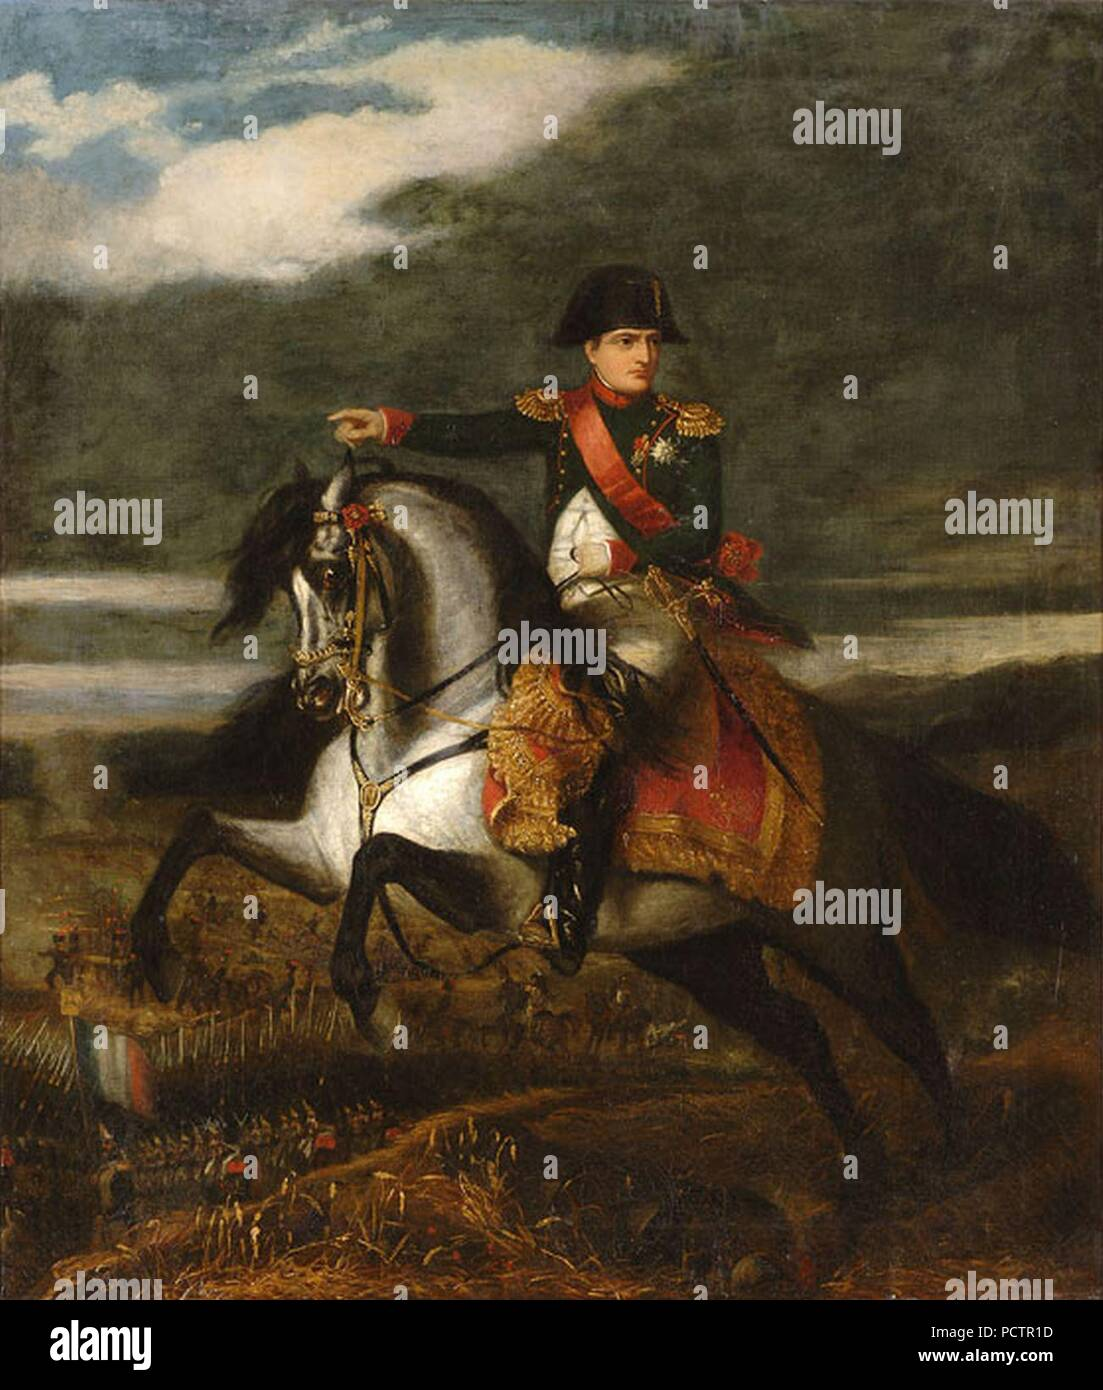 Alfred d'Orsay Napoleon Wagram 1843. - Stock Image